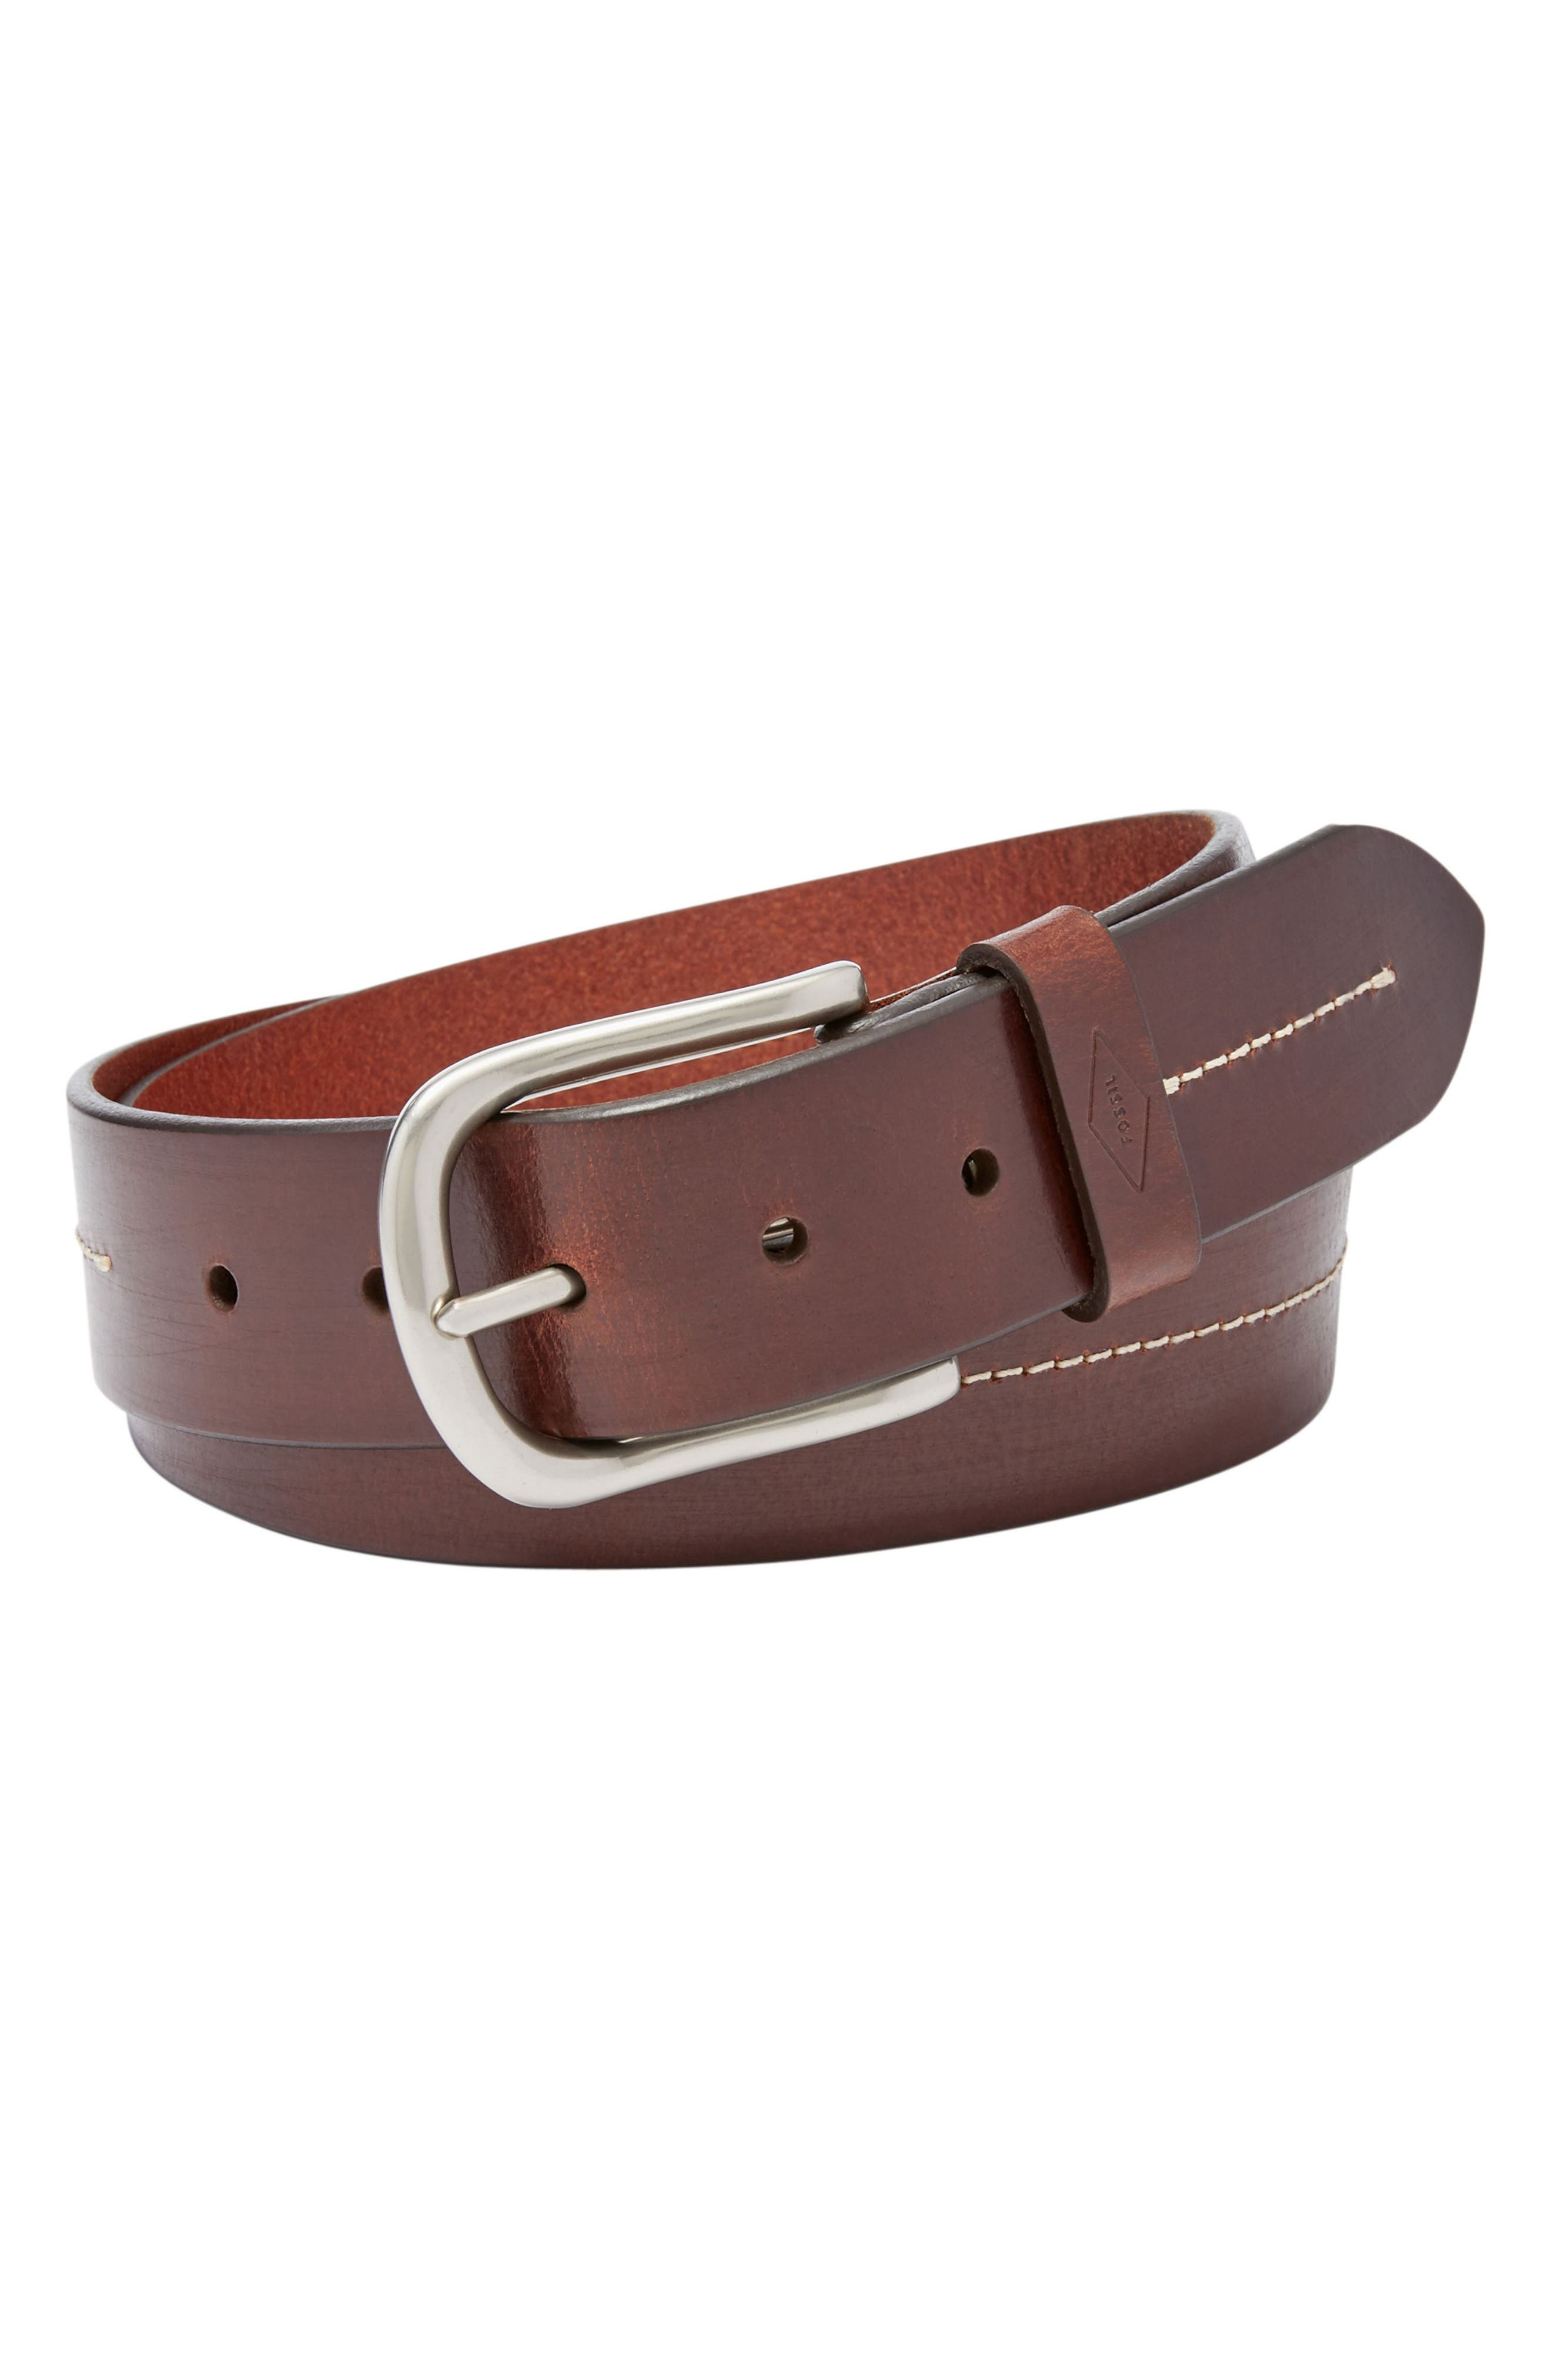 Alternate Image 1 Selected - Fossil Cullen Leather Belt